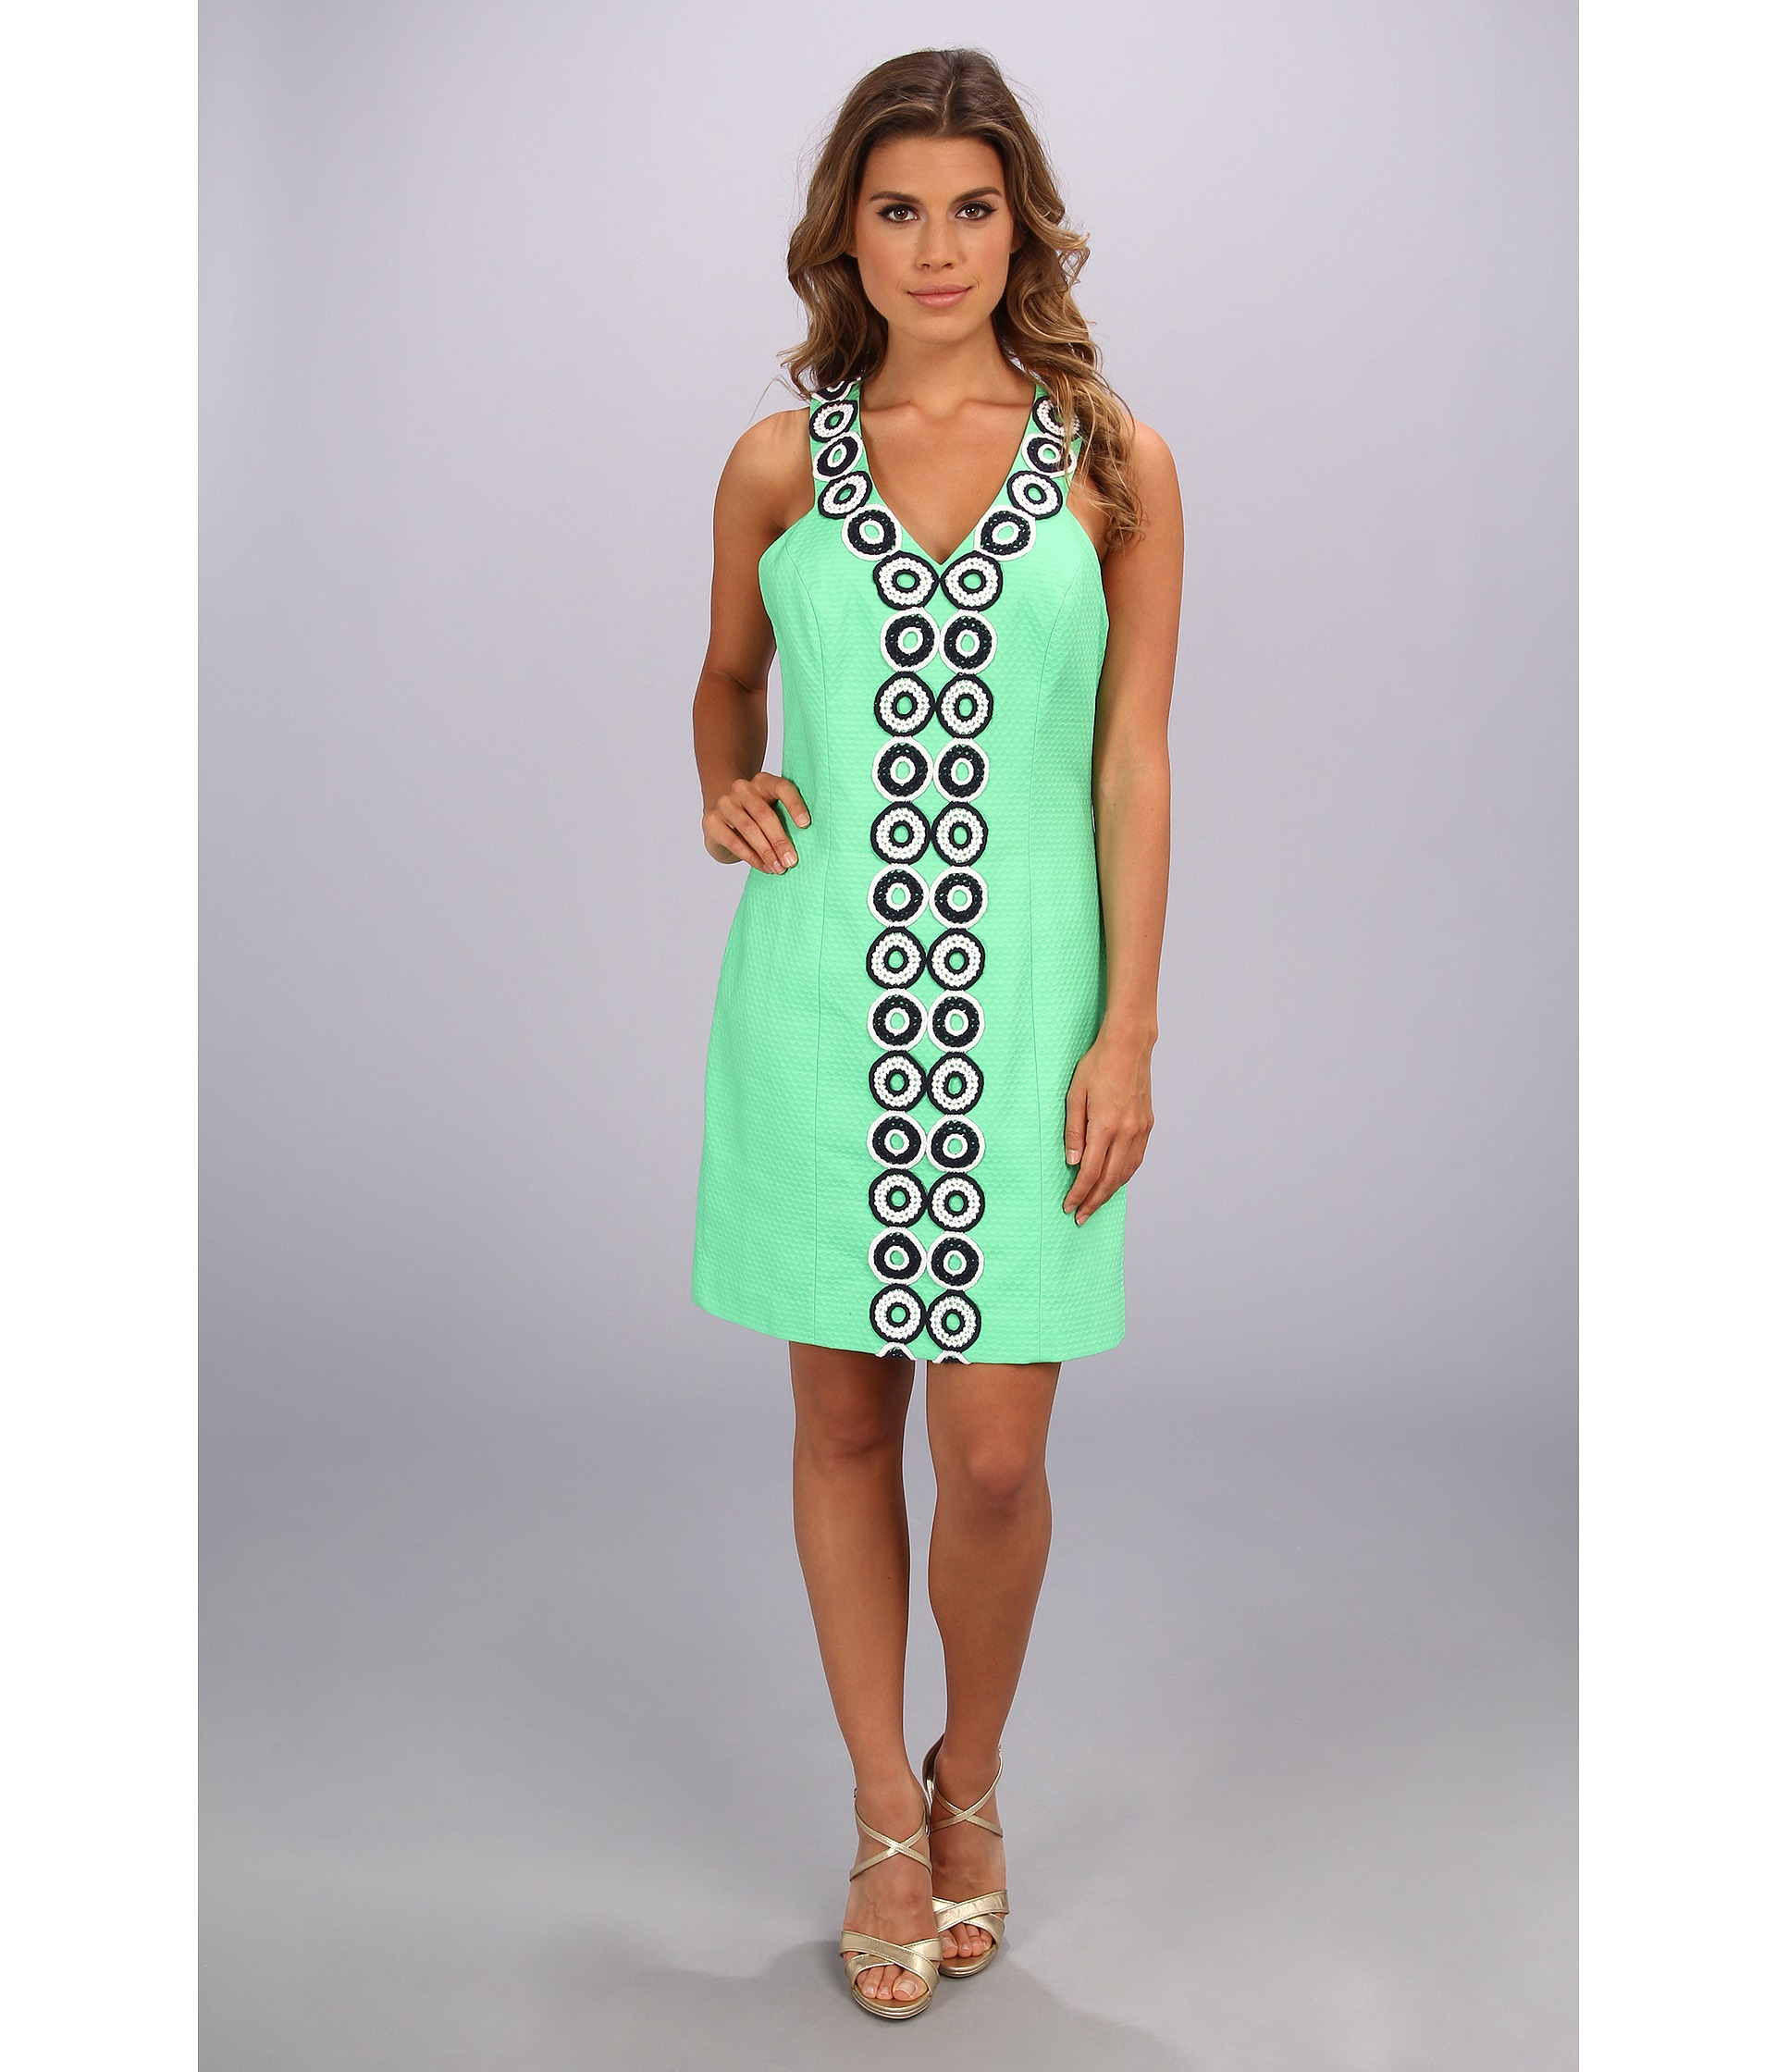 Lilly Pulitzer Dresses For Women Lilly Pulitzer Trudy Shift